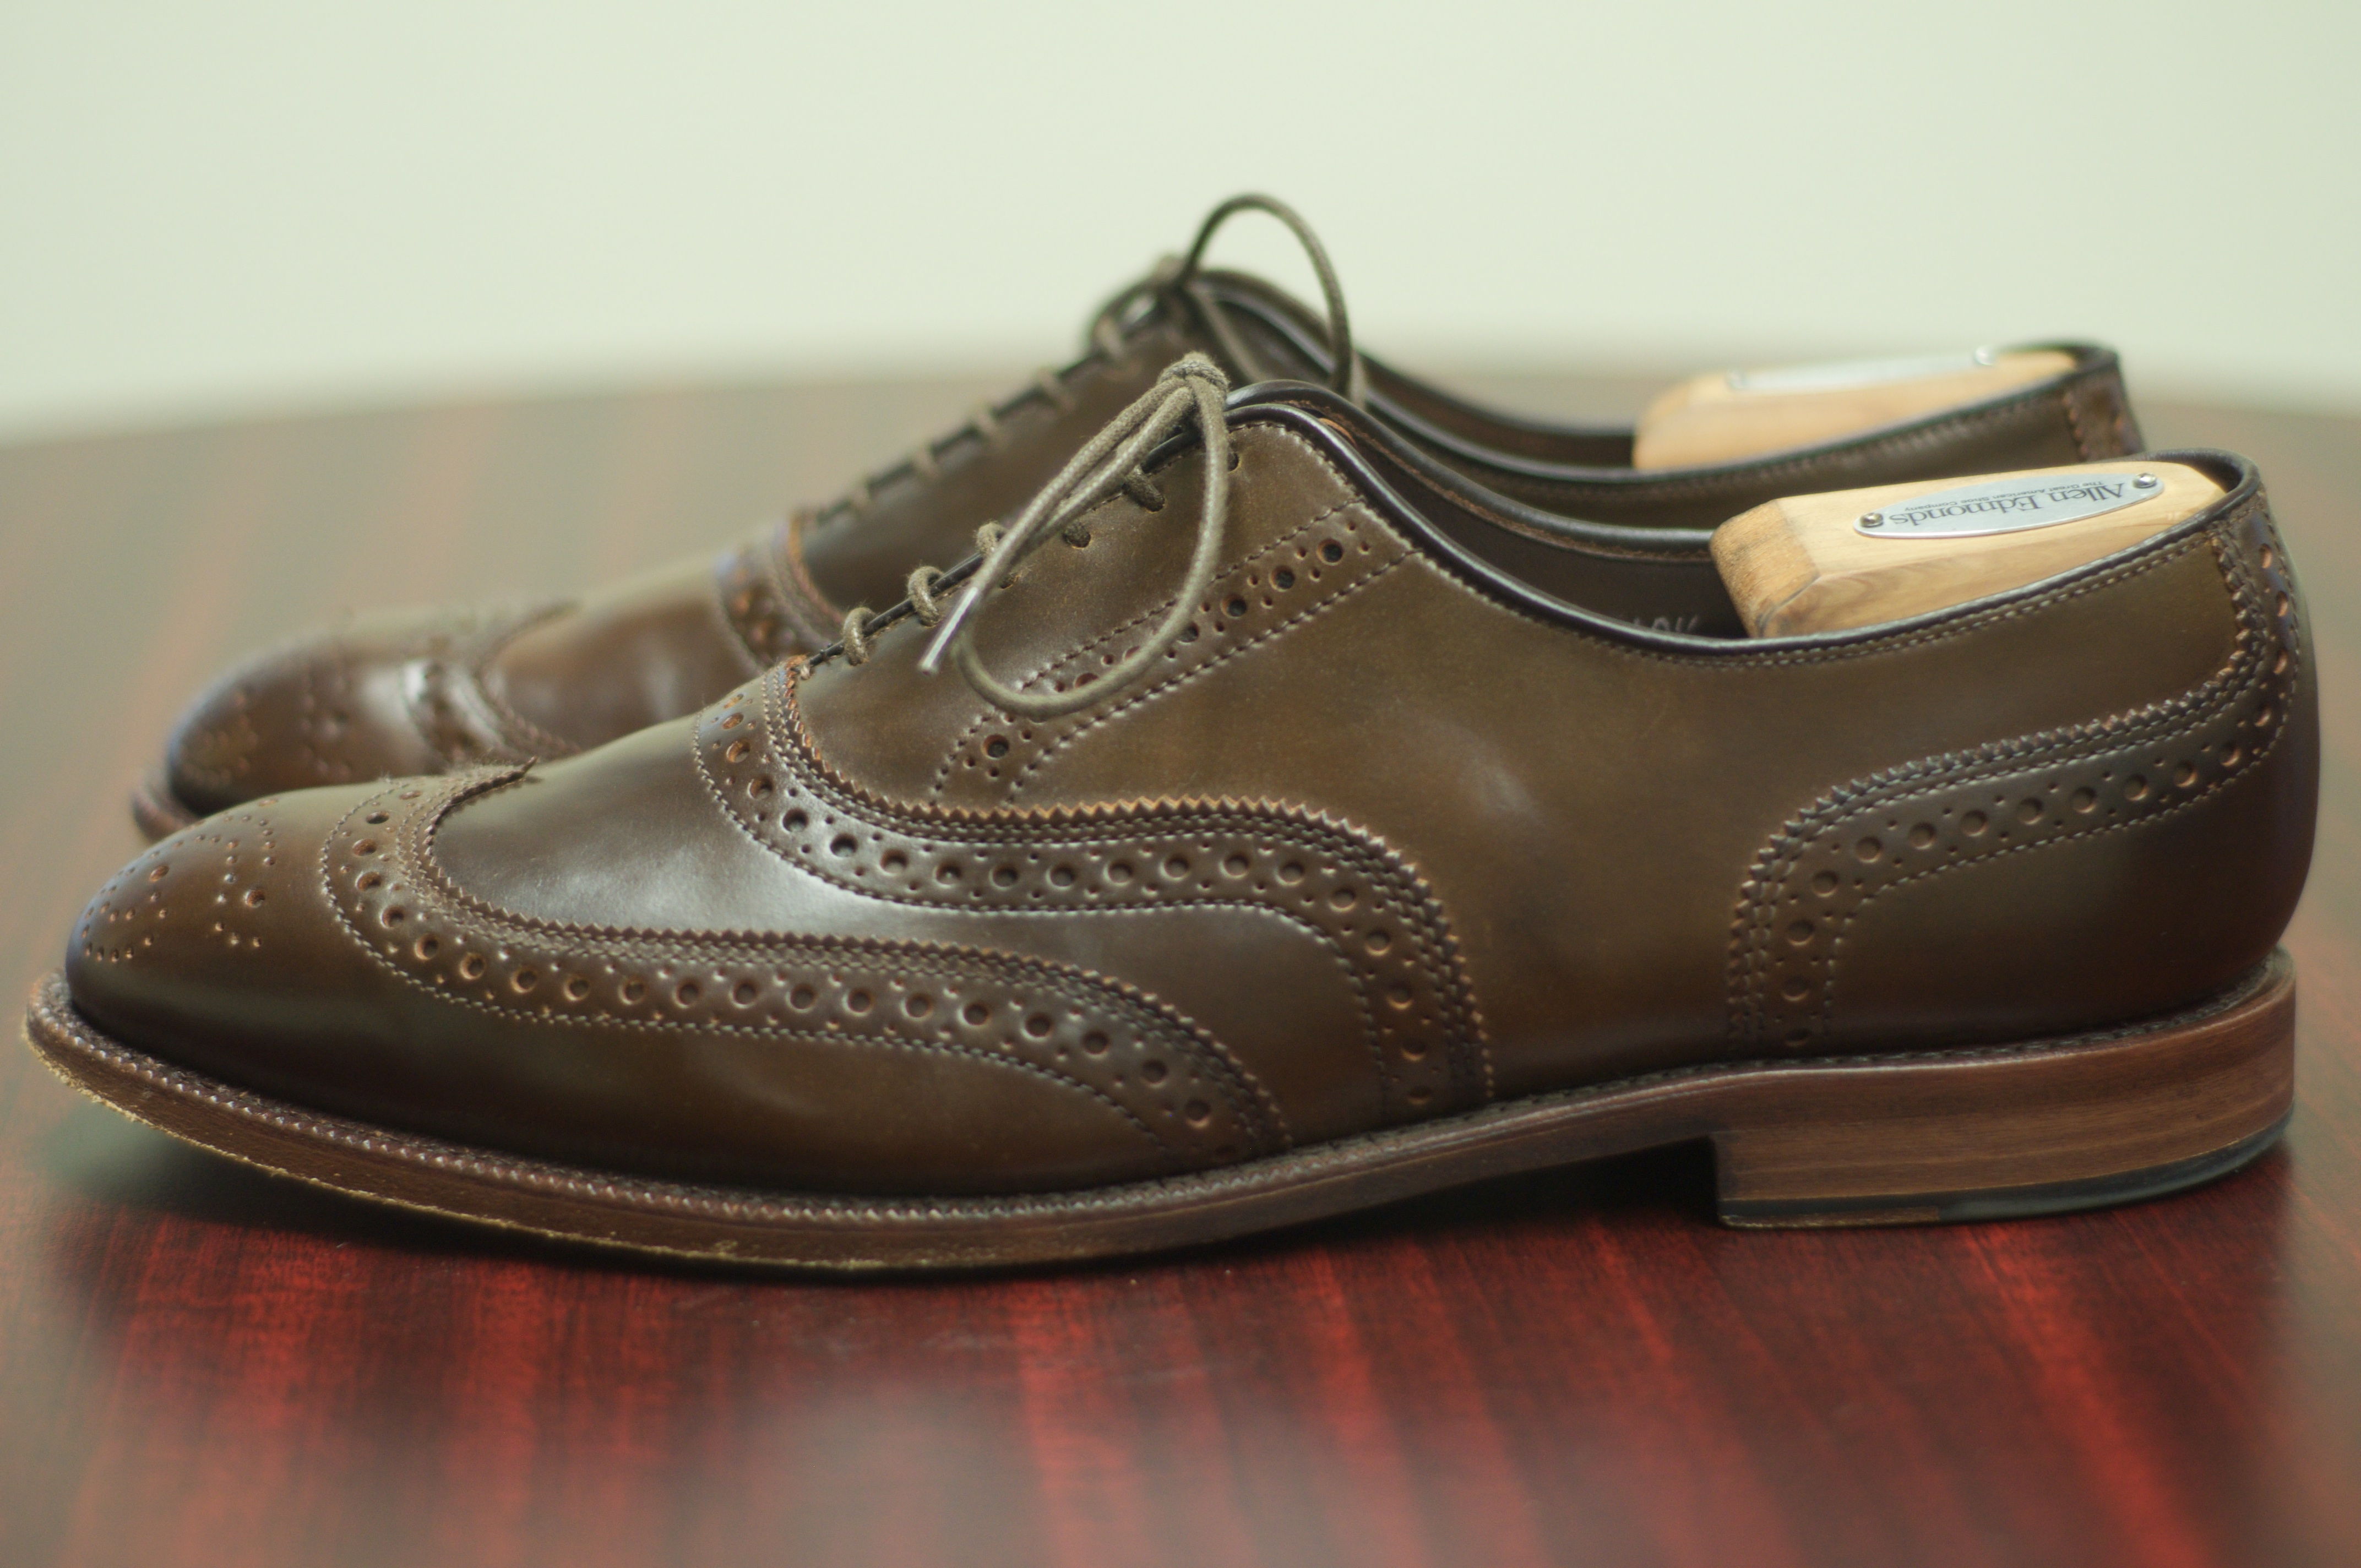 wholesale dealer dca48 713e3 Acquisti Online 2 Sconti su Qualsiasi Caso allen edmonds ...